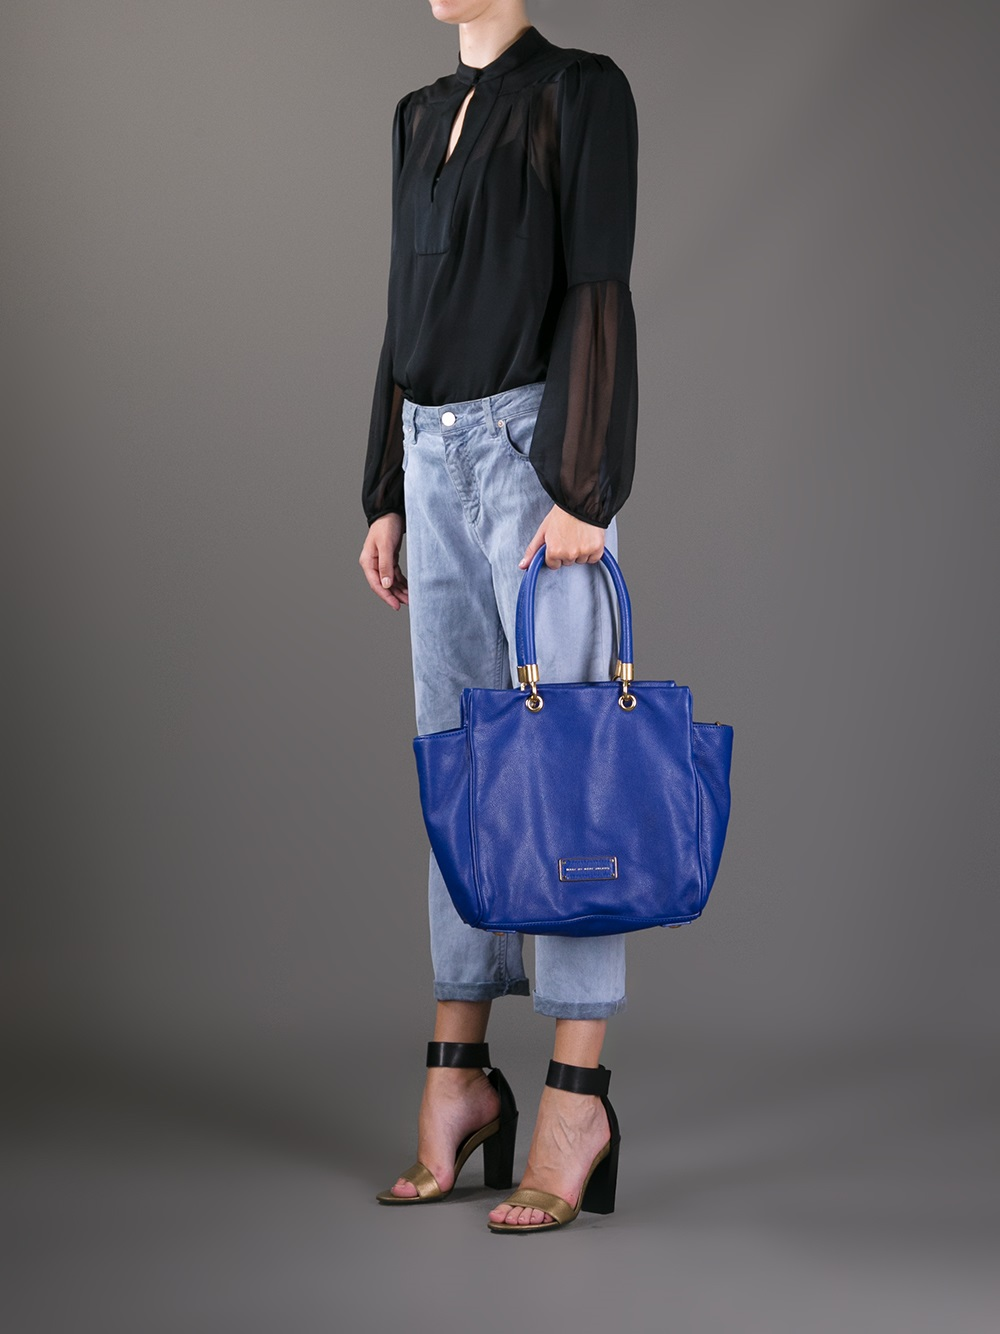 2aaa8c3a50c7 Lyst - Marc By Marc Jacobs Too Hot To Handle Bentley Tote in Blue